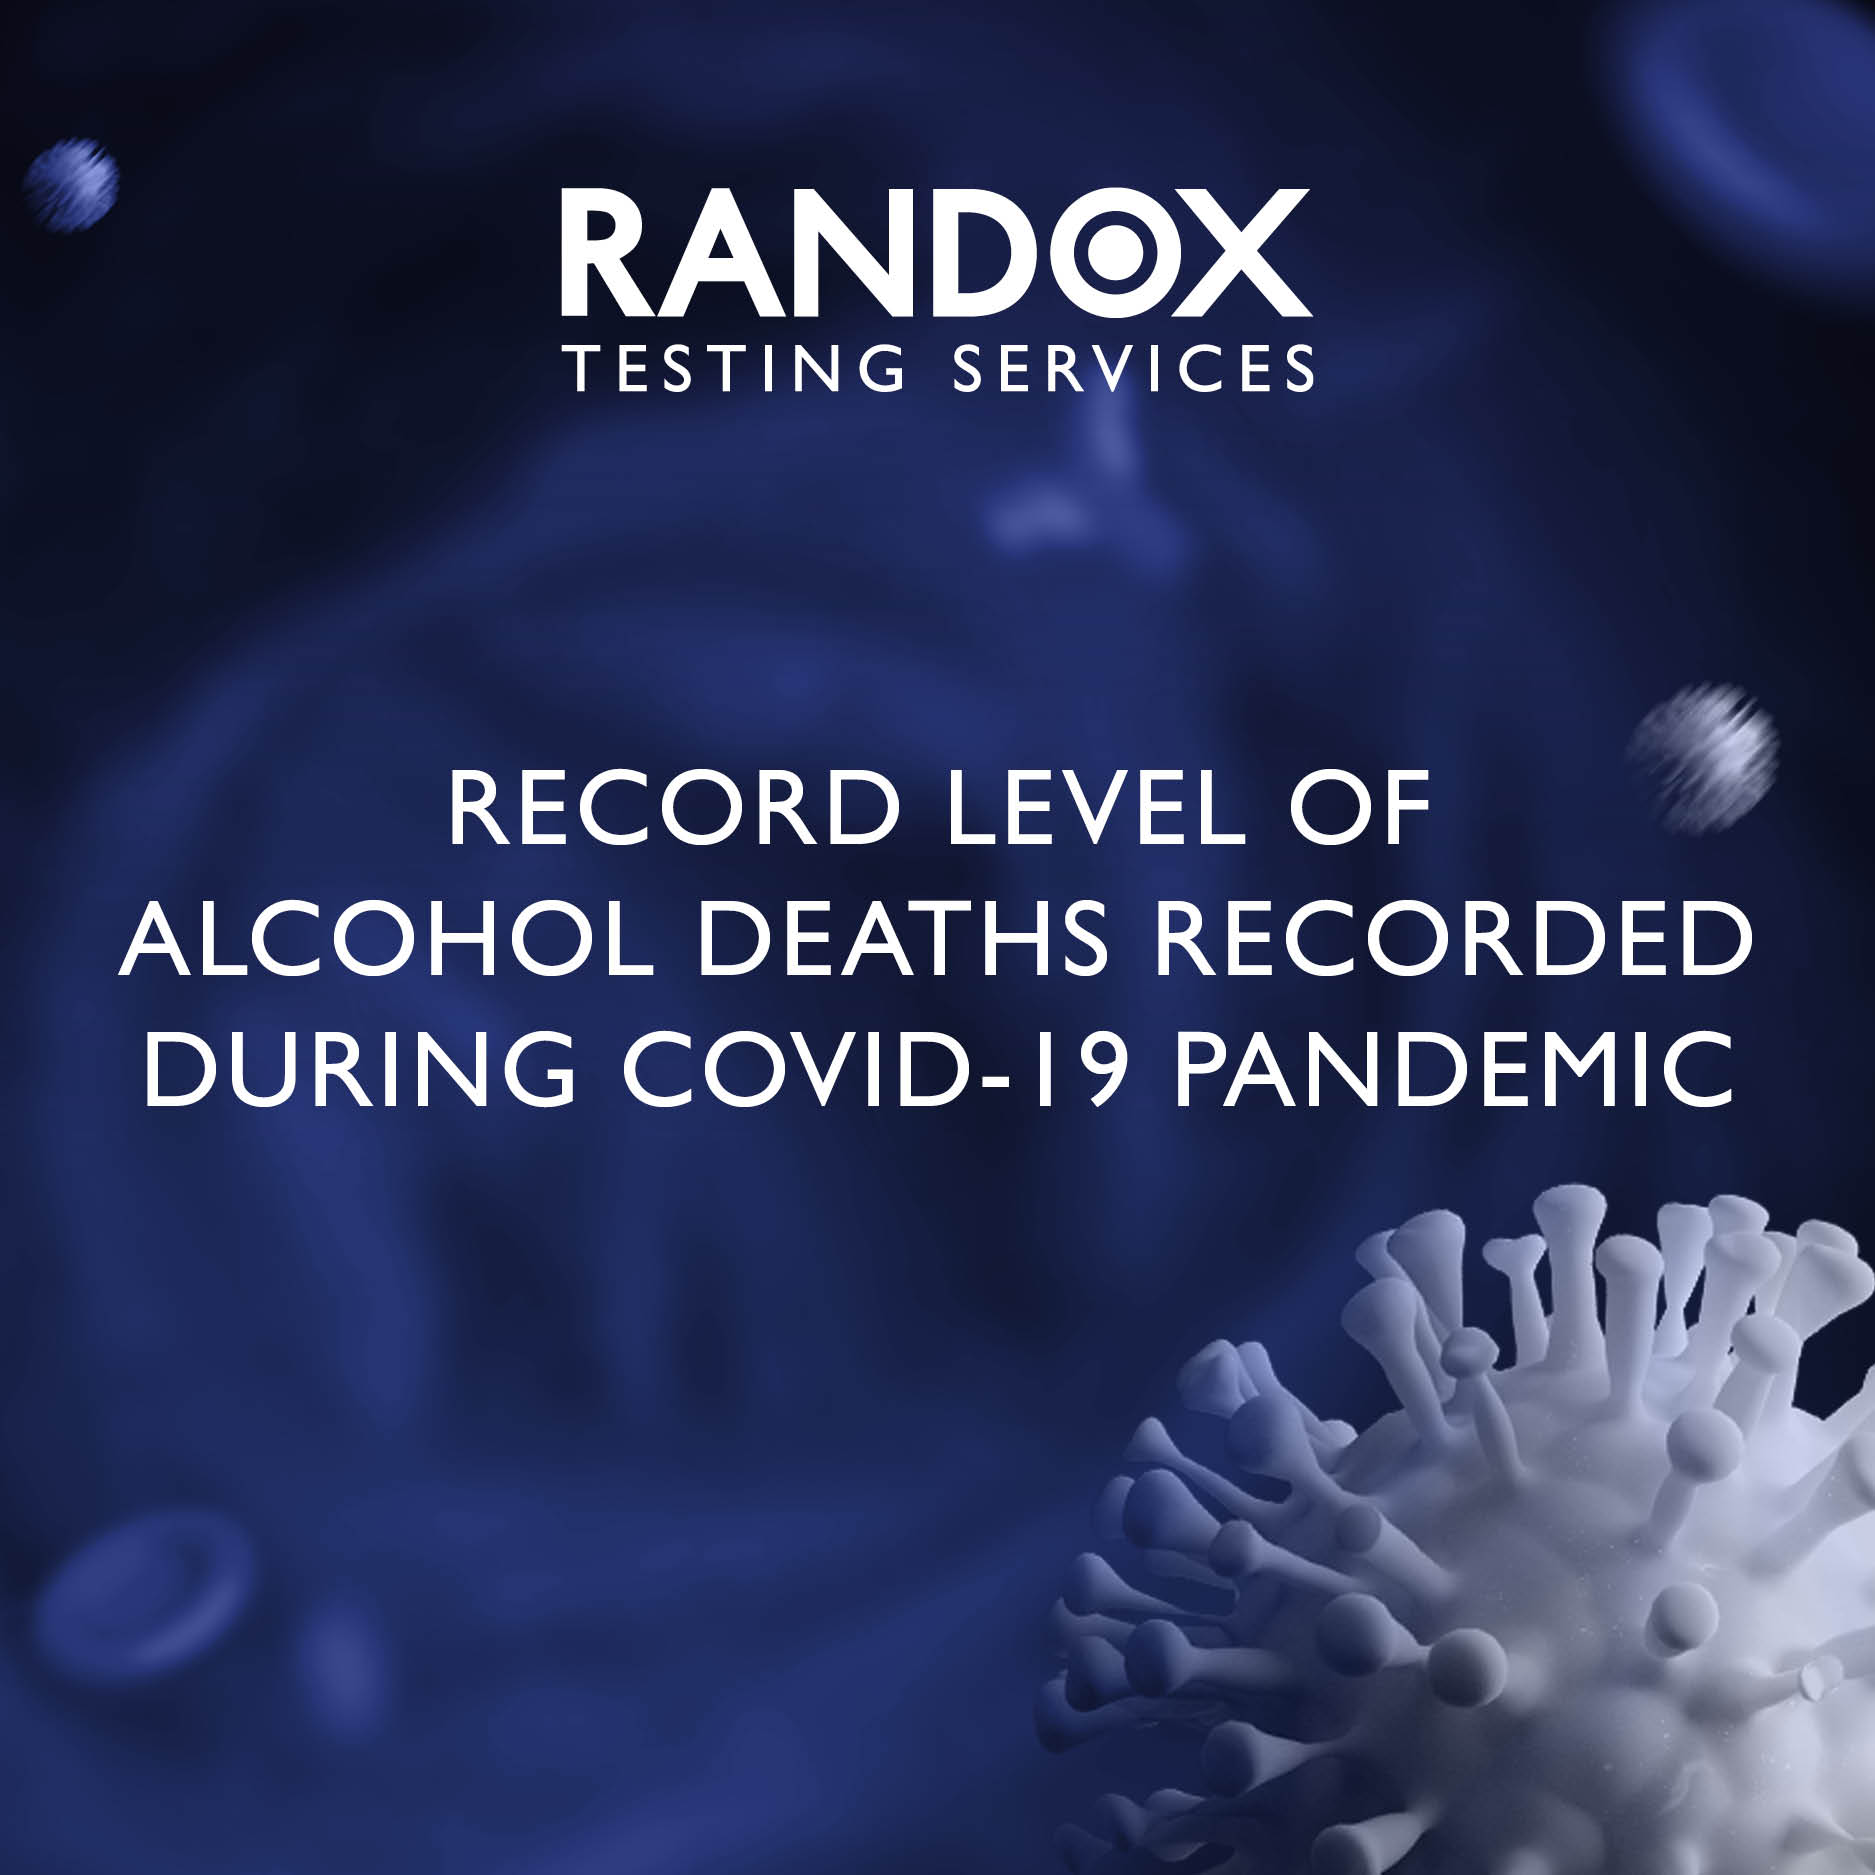 Alcohol deaths during the pandemic